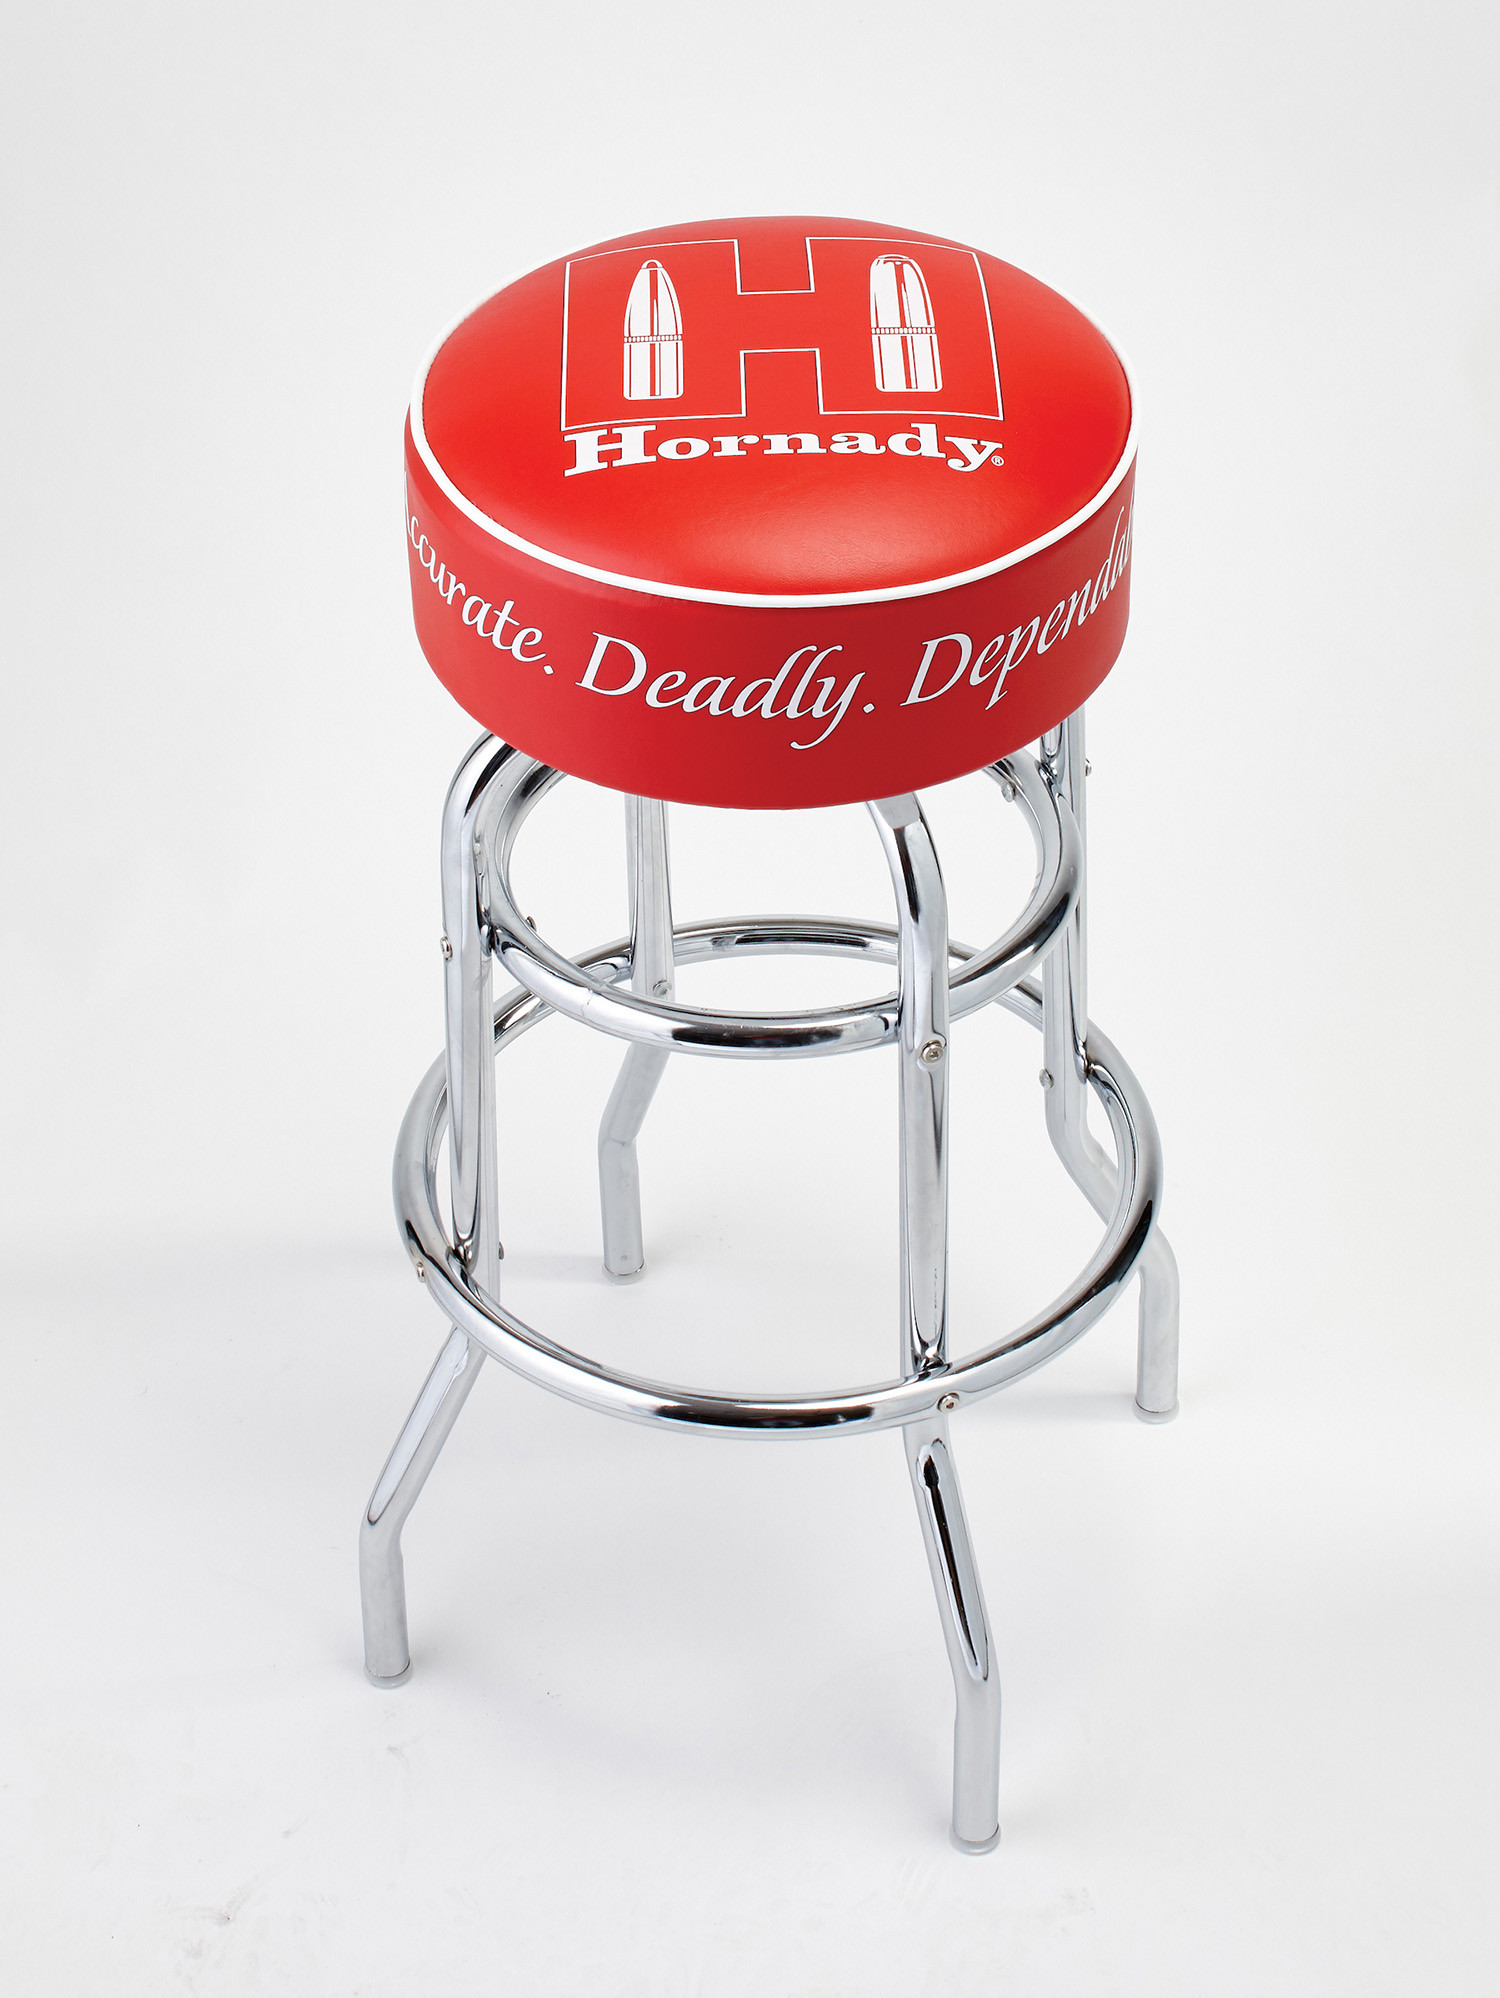 Hornady Reloading Bench Stool Natchez : pc9910311 from www.natchezss.com size 1500 x 1998 jpeg 272kB